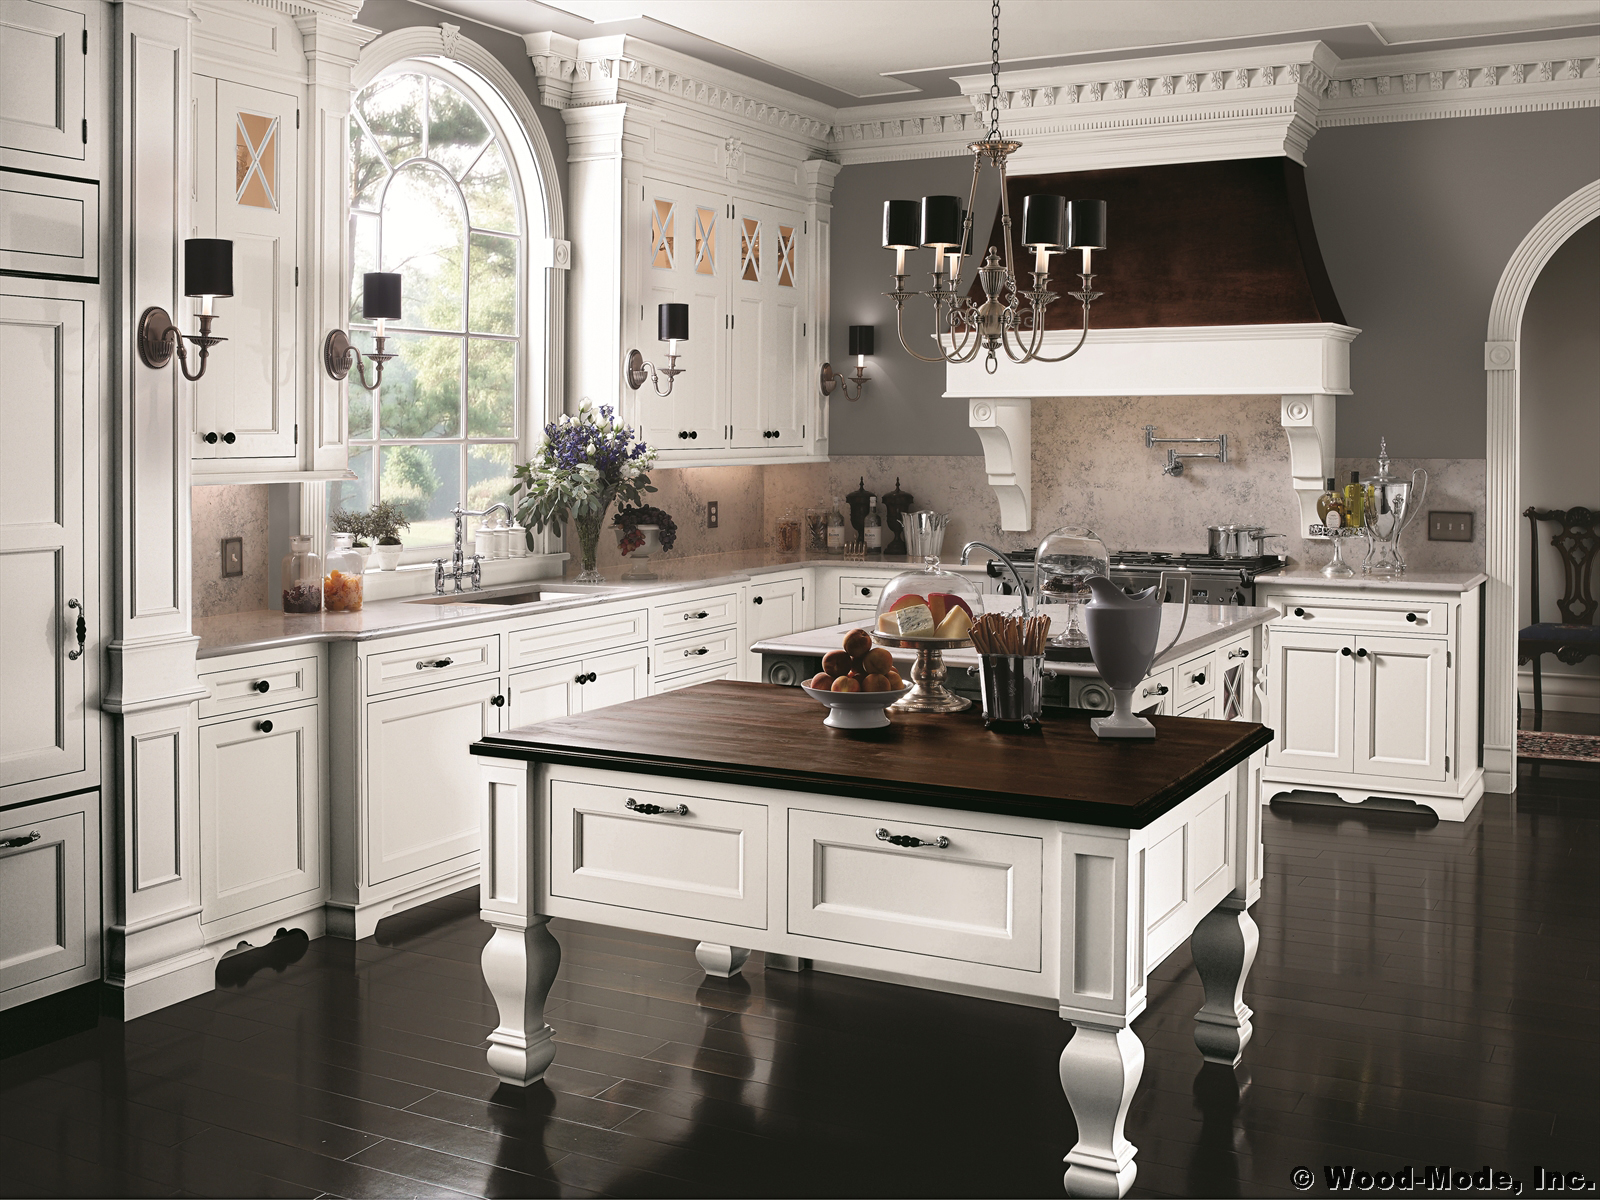 kitchen design bethlehem, pa | bethlehem kitchen remodeling